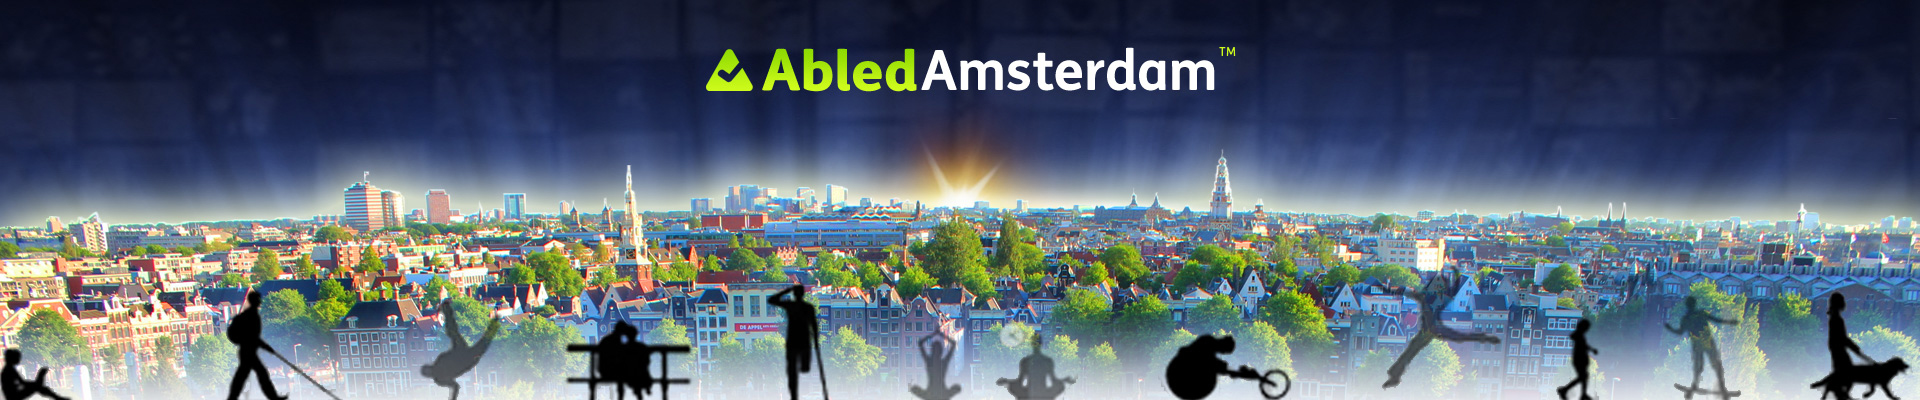 AbledAmsterdam Banner shows a photo of the cityscape with the silhouettes of differently-abled people walking, racing a wheelchair, walking with a guide dog, or sitting along the bottom of the banner with the AbledAmsterdam logo at the top.